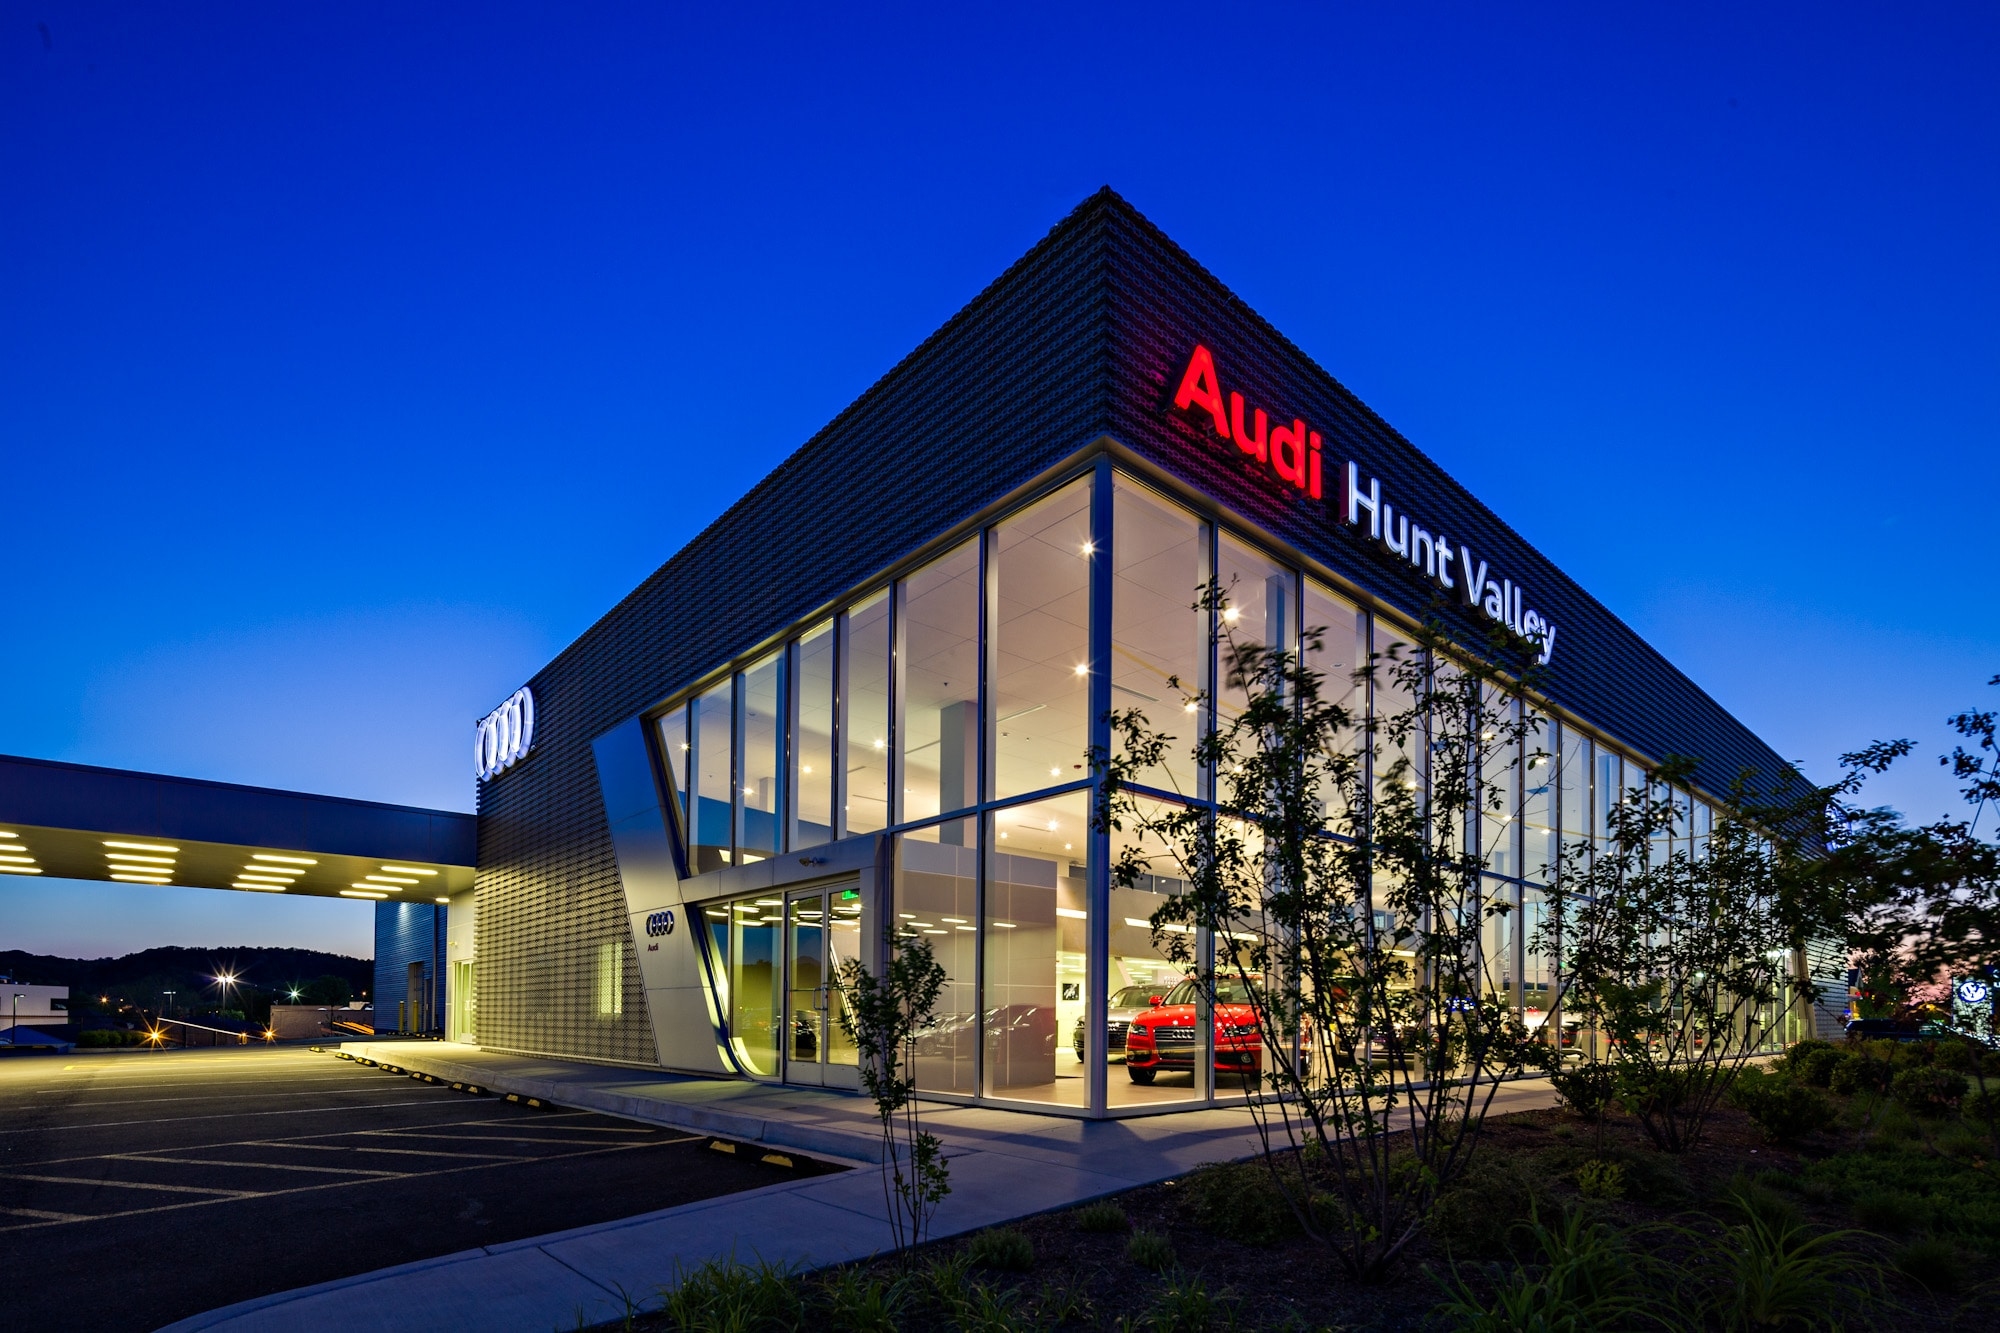 About Audi Hunt Valley Greater Baltimore Cockeysville